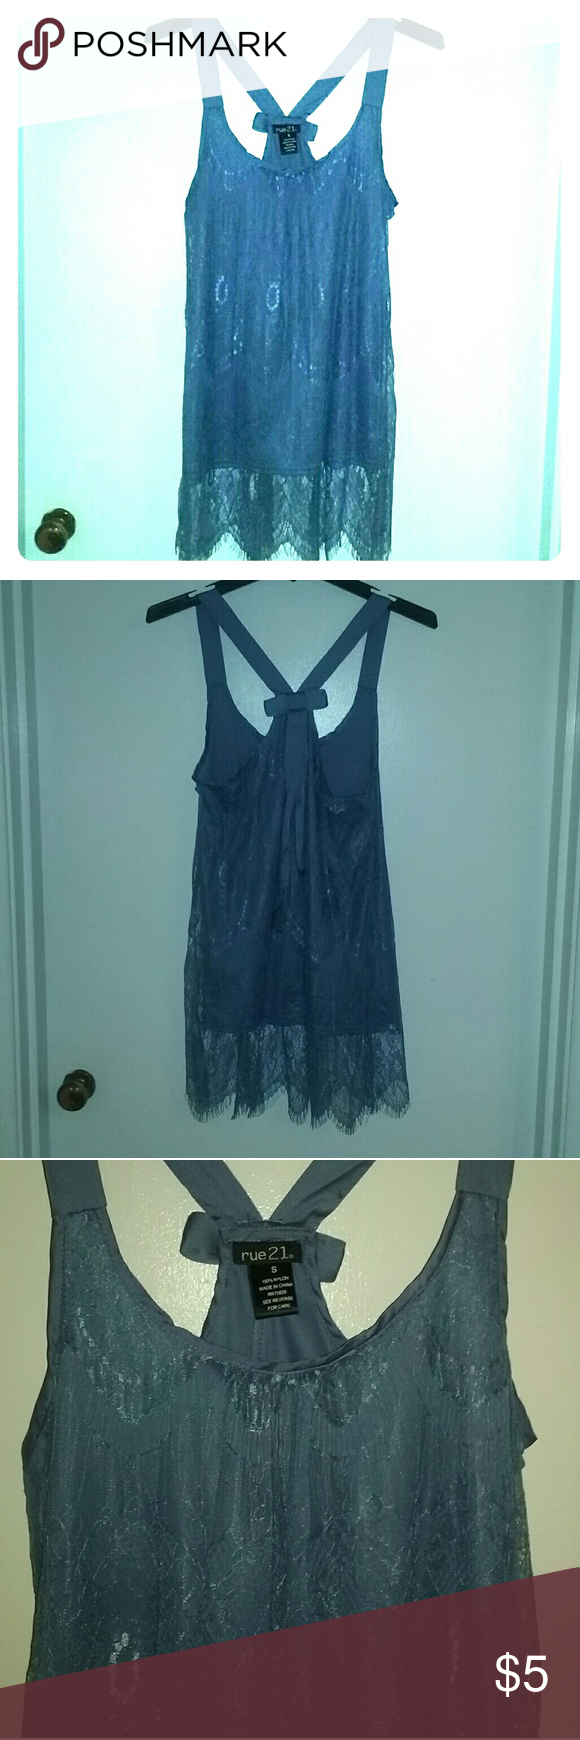 Baby blue lace tank Baby blue Rue 21 lace tank with satin straps and bow in the back. Long length, flowy fit. Size small but fits more like a medium. Can be dressed up or down. No pulls or snags in lace, has fringed bottom hem. Rue 21 Tops Tank Tops